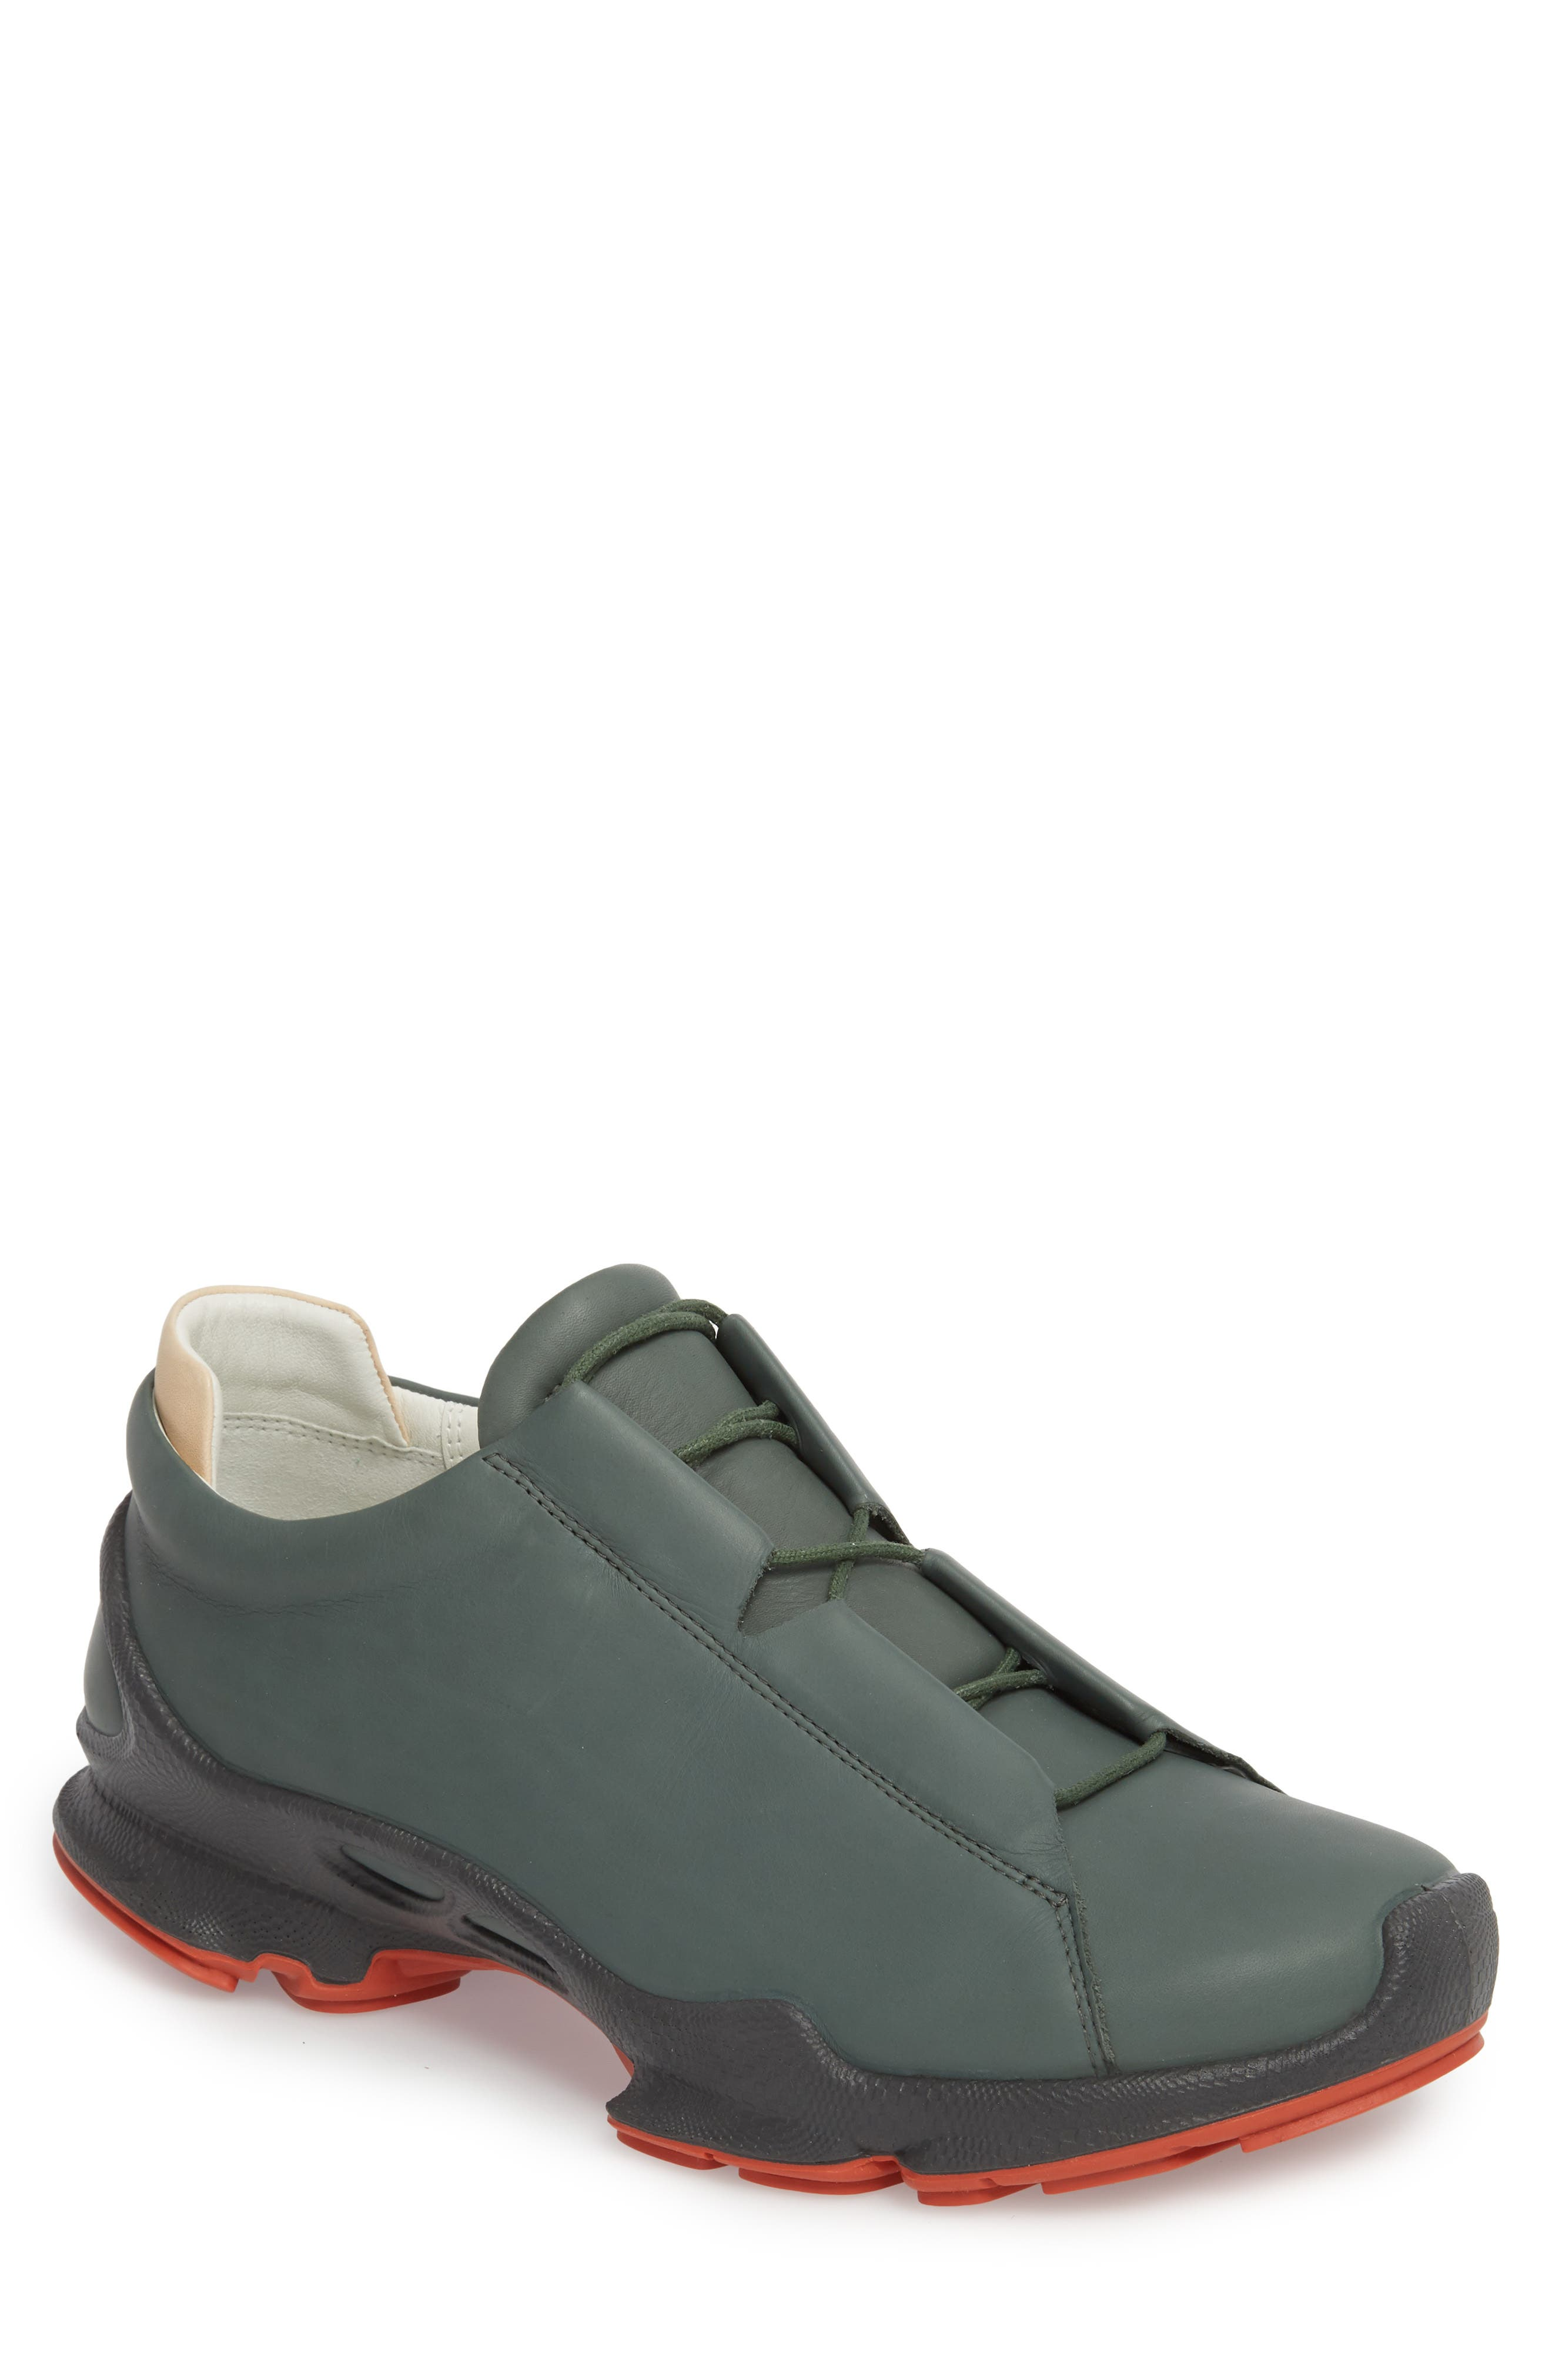 BIOM C Low Top Sneaker,                         Main,                         color, Military Sage Leather